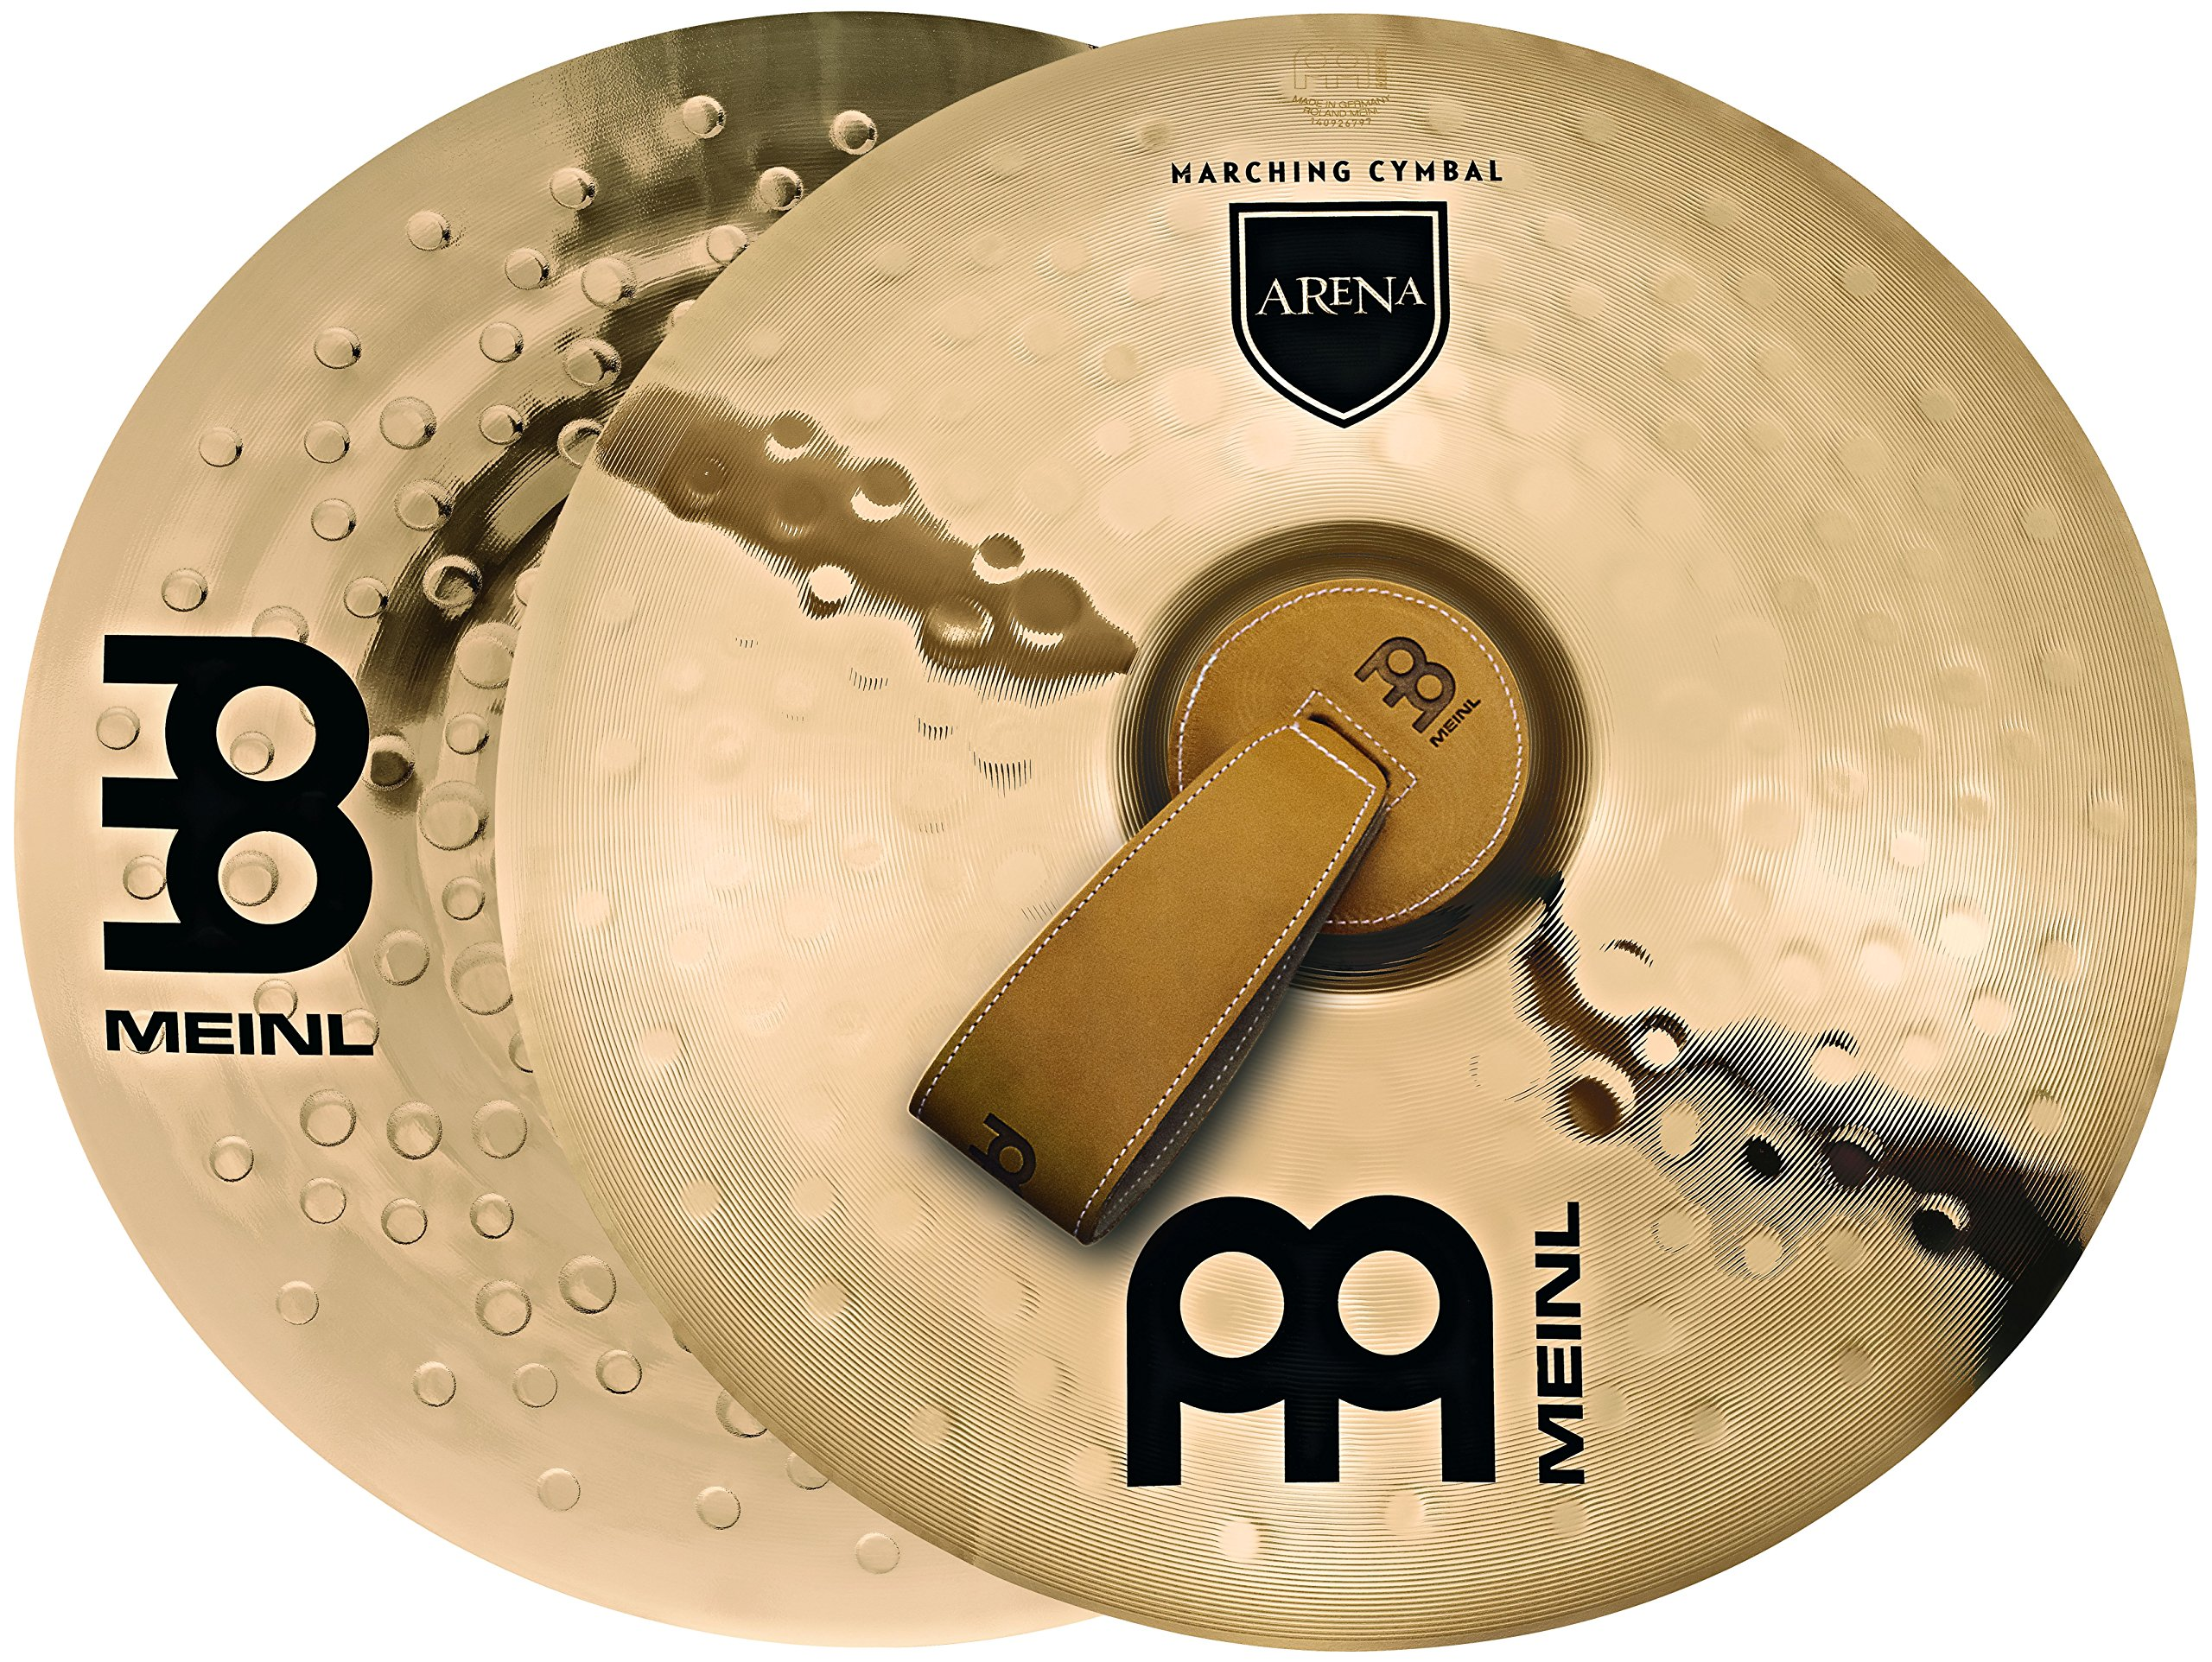 Meinl 16'' Arena Marching Cymbal Pair with Straps - Professional Bronze Alloy Brilliant Finish - Made In Germany, 2-YEAR WARRANTY (MA-AR-16) by Meinl Cymbals